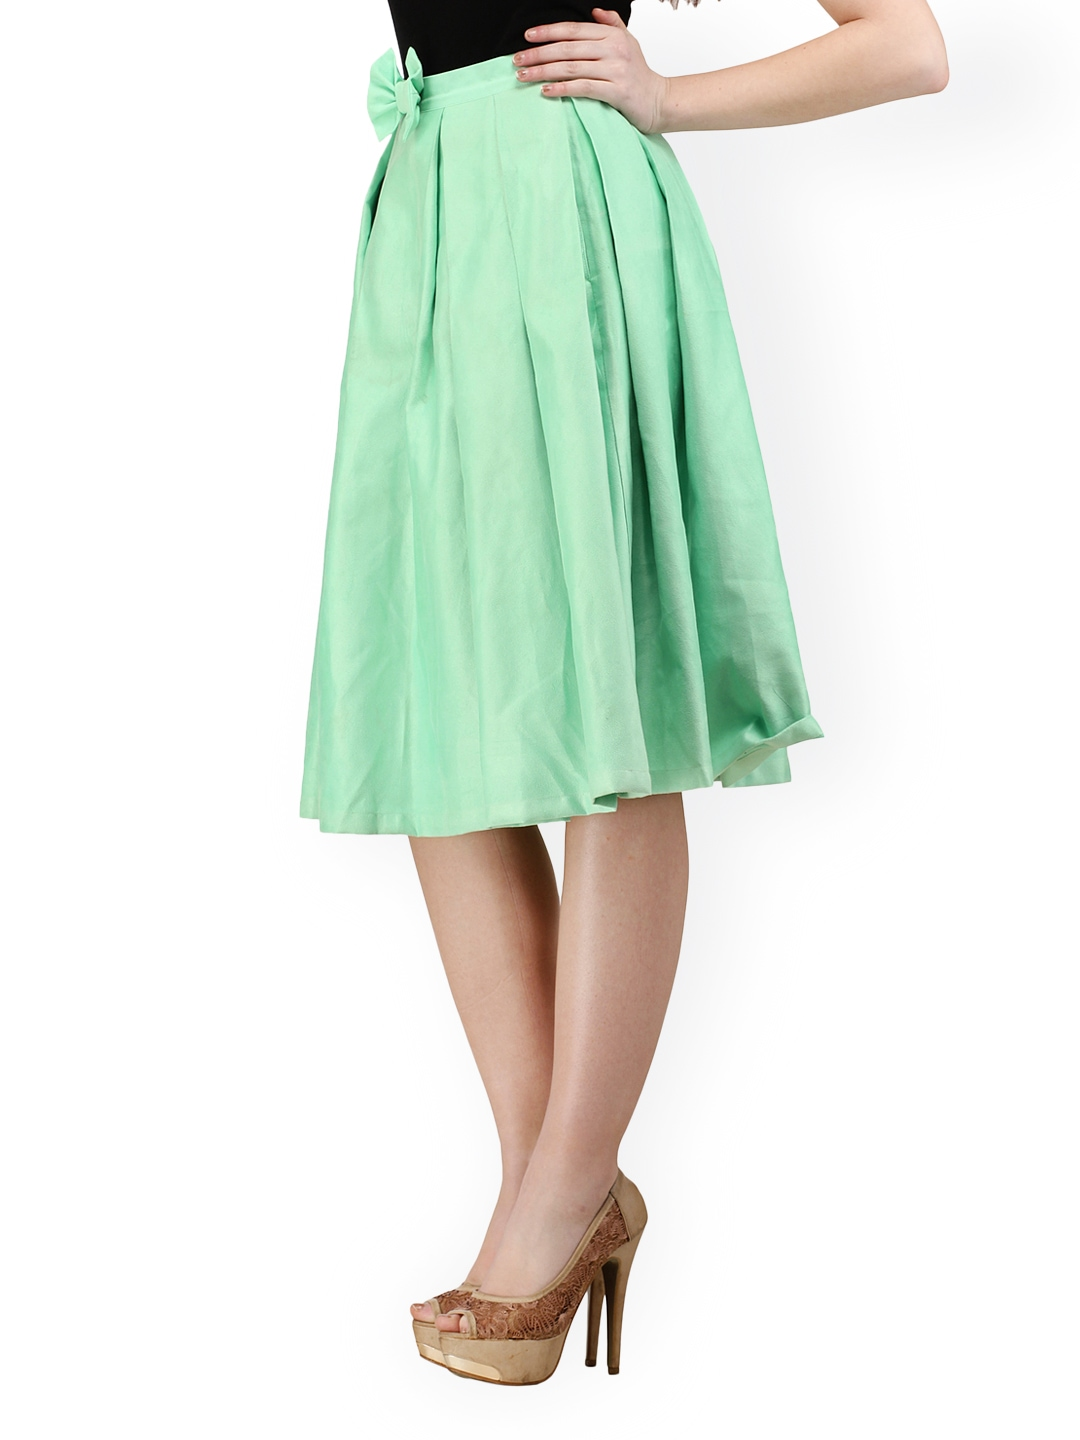 Green wool-blend A-line skirt from P.A.R.O.S.H..